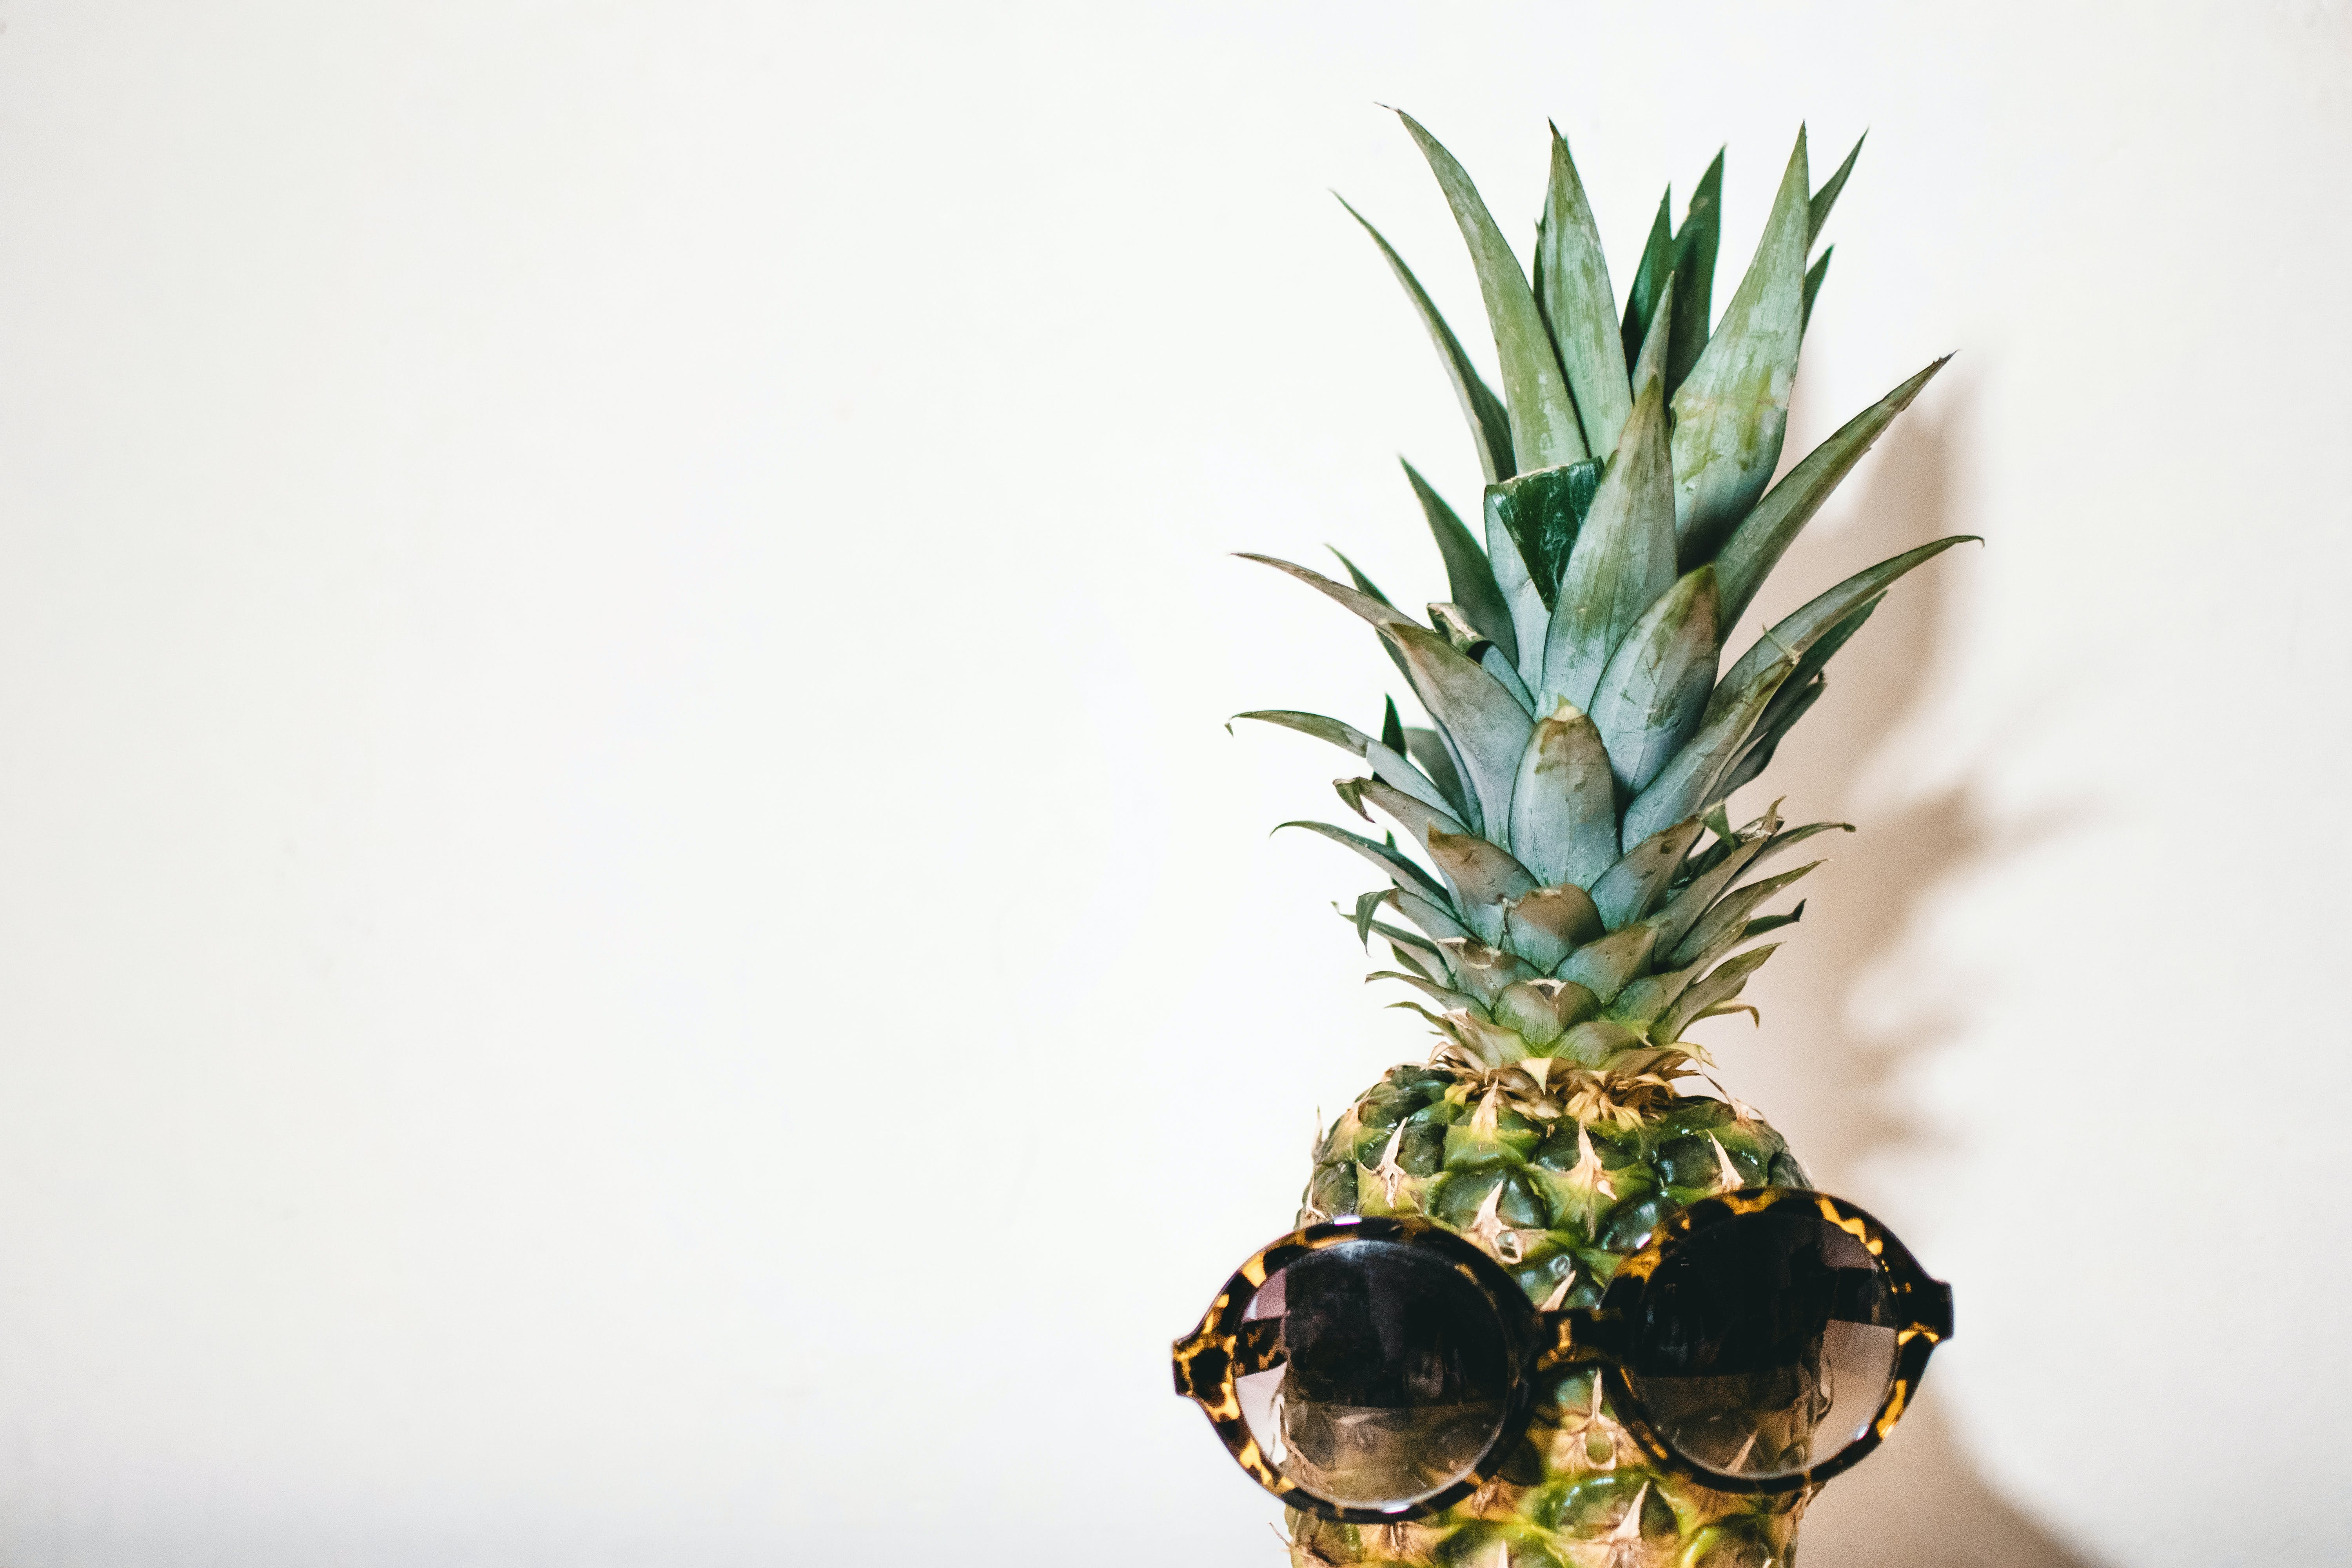 Close-Up Photography of Eyeglasses on Pineapple